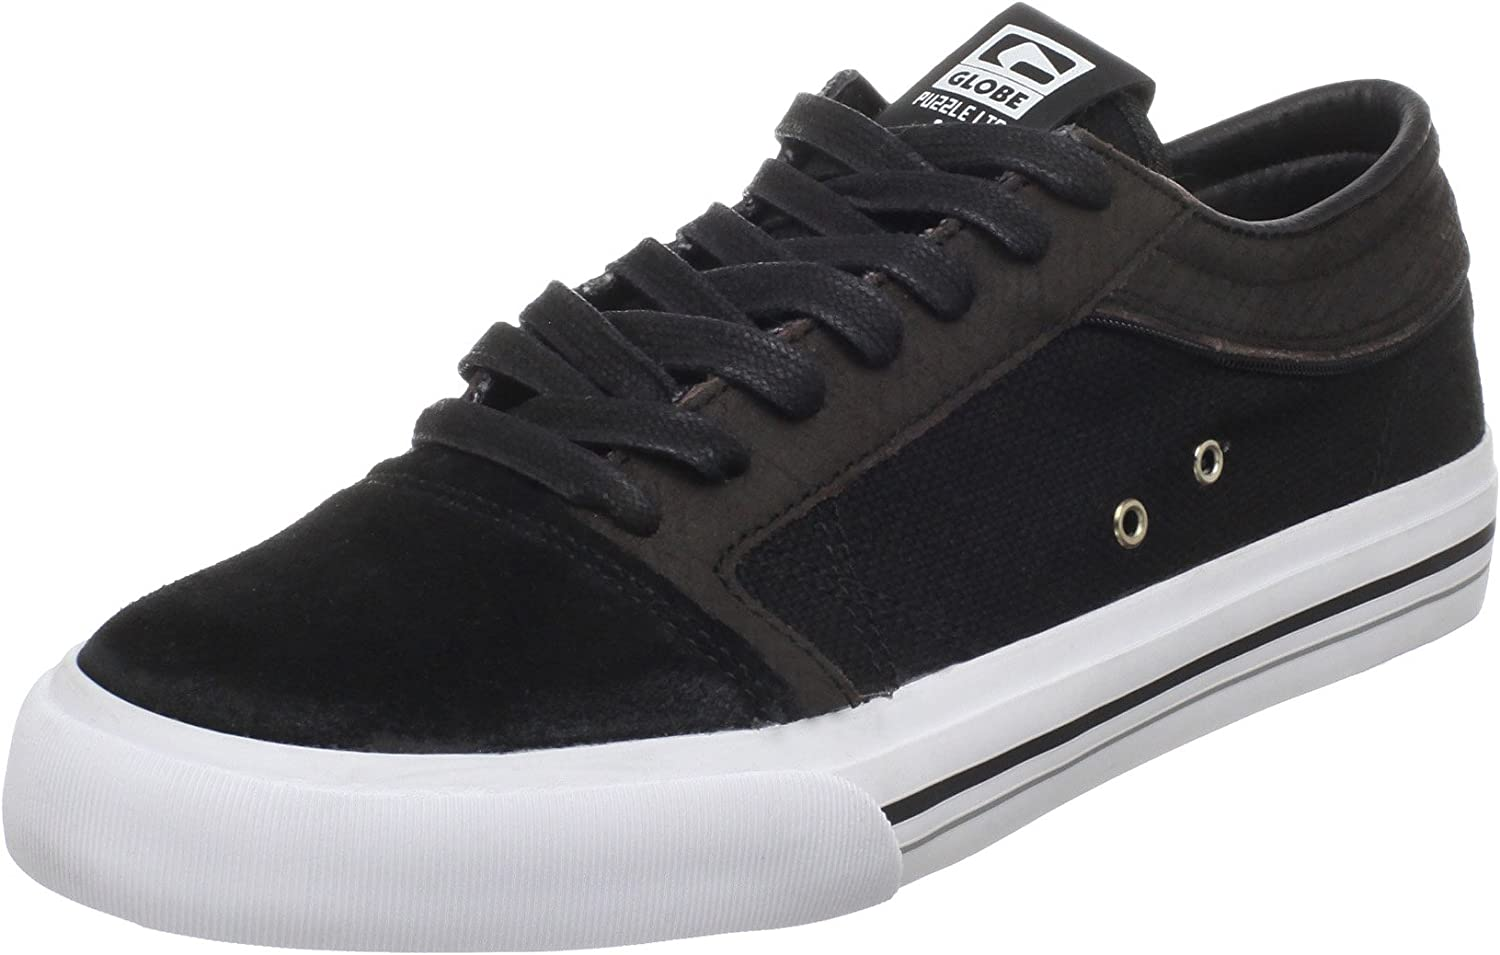 OFFicial store Globe Men's Limited time trial price Skybird Skate Shoe